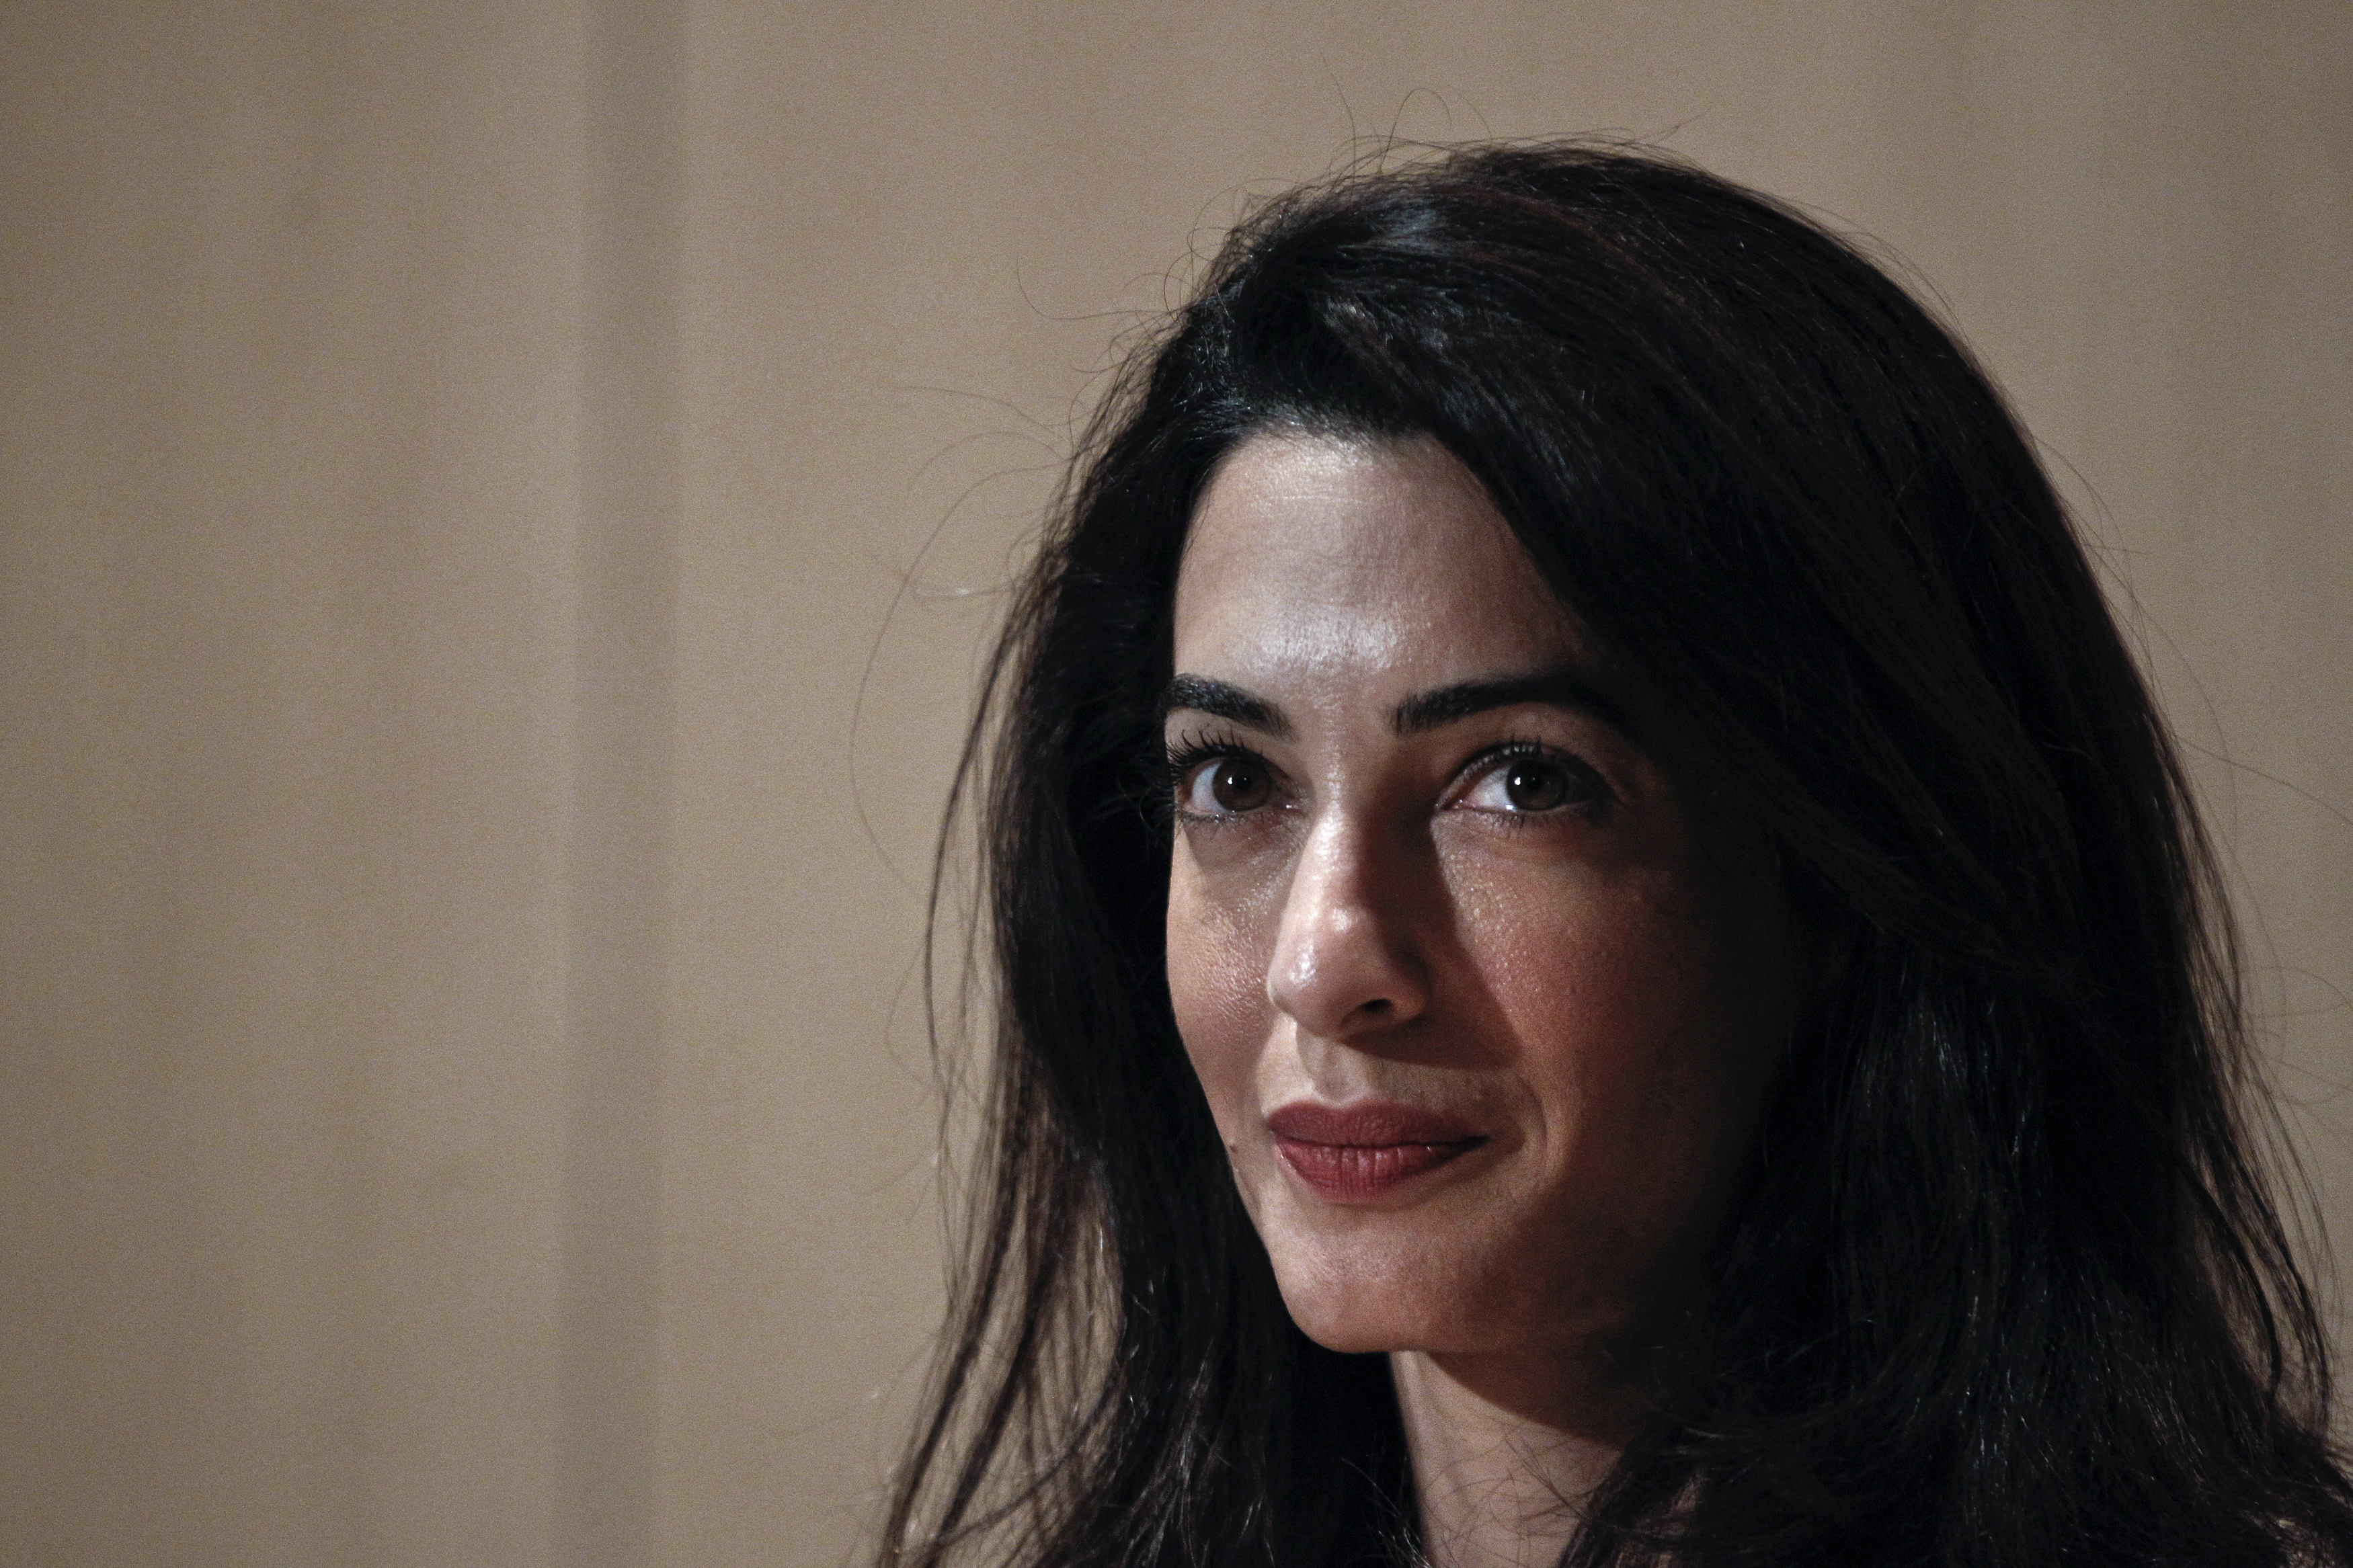 Human-rights lawyer Amal Alamuddin Clooney looks on during a news conference at the Acropolis museum in Athens on Oct. 15, 2014